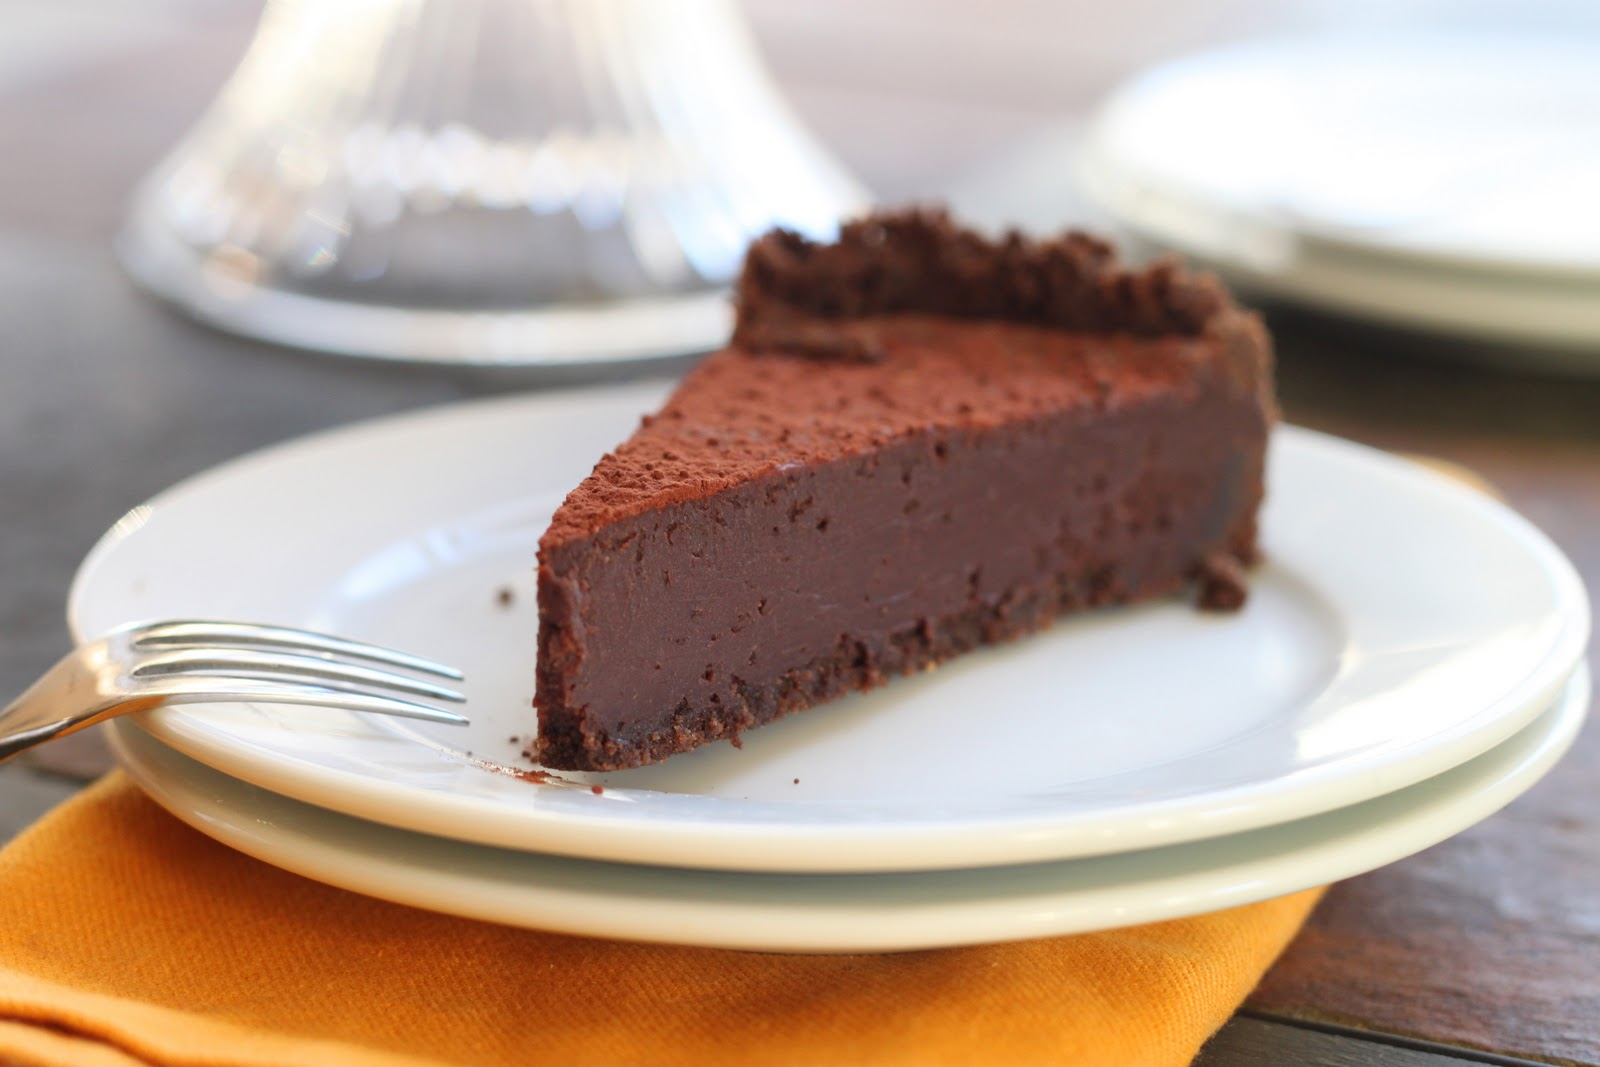 The Cilantropist: Dark Chocolate Truffle Tart